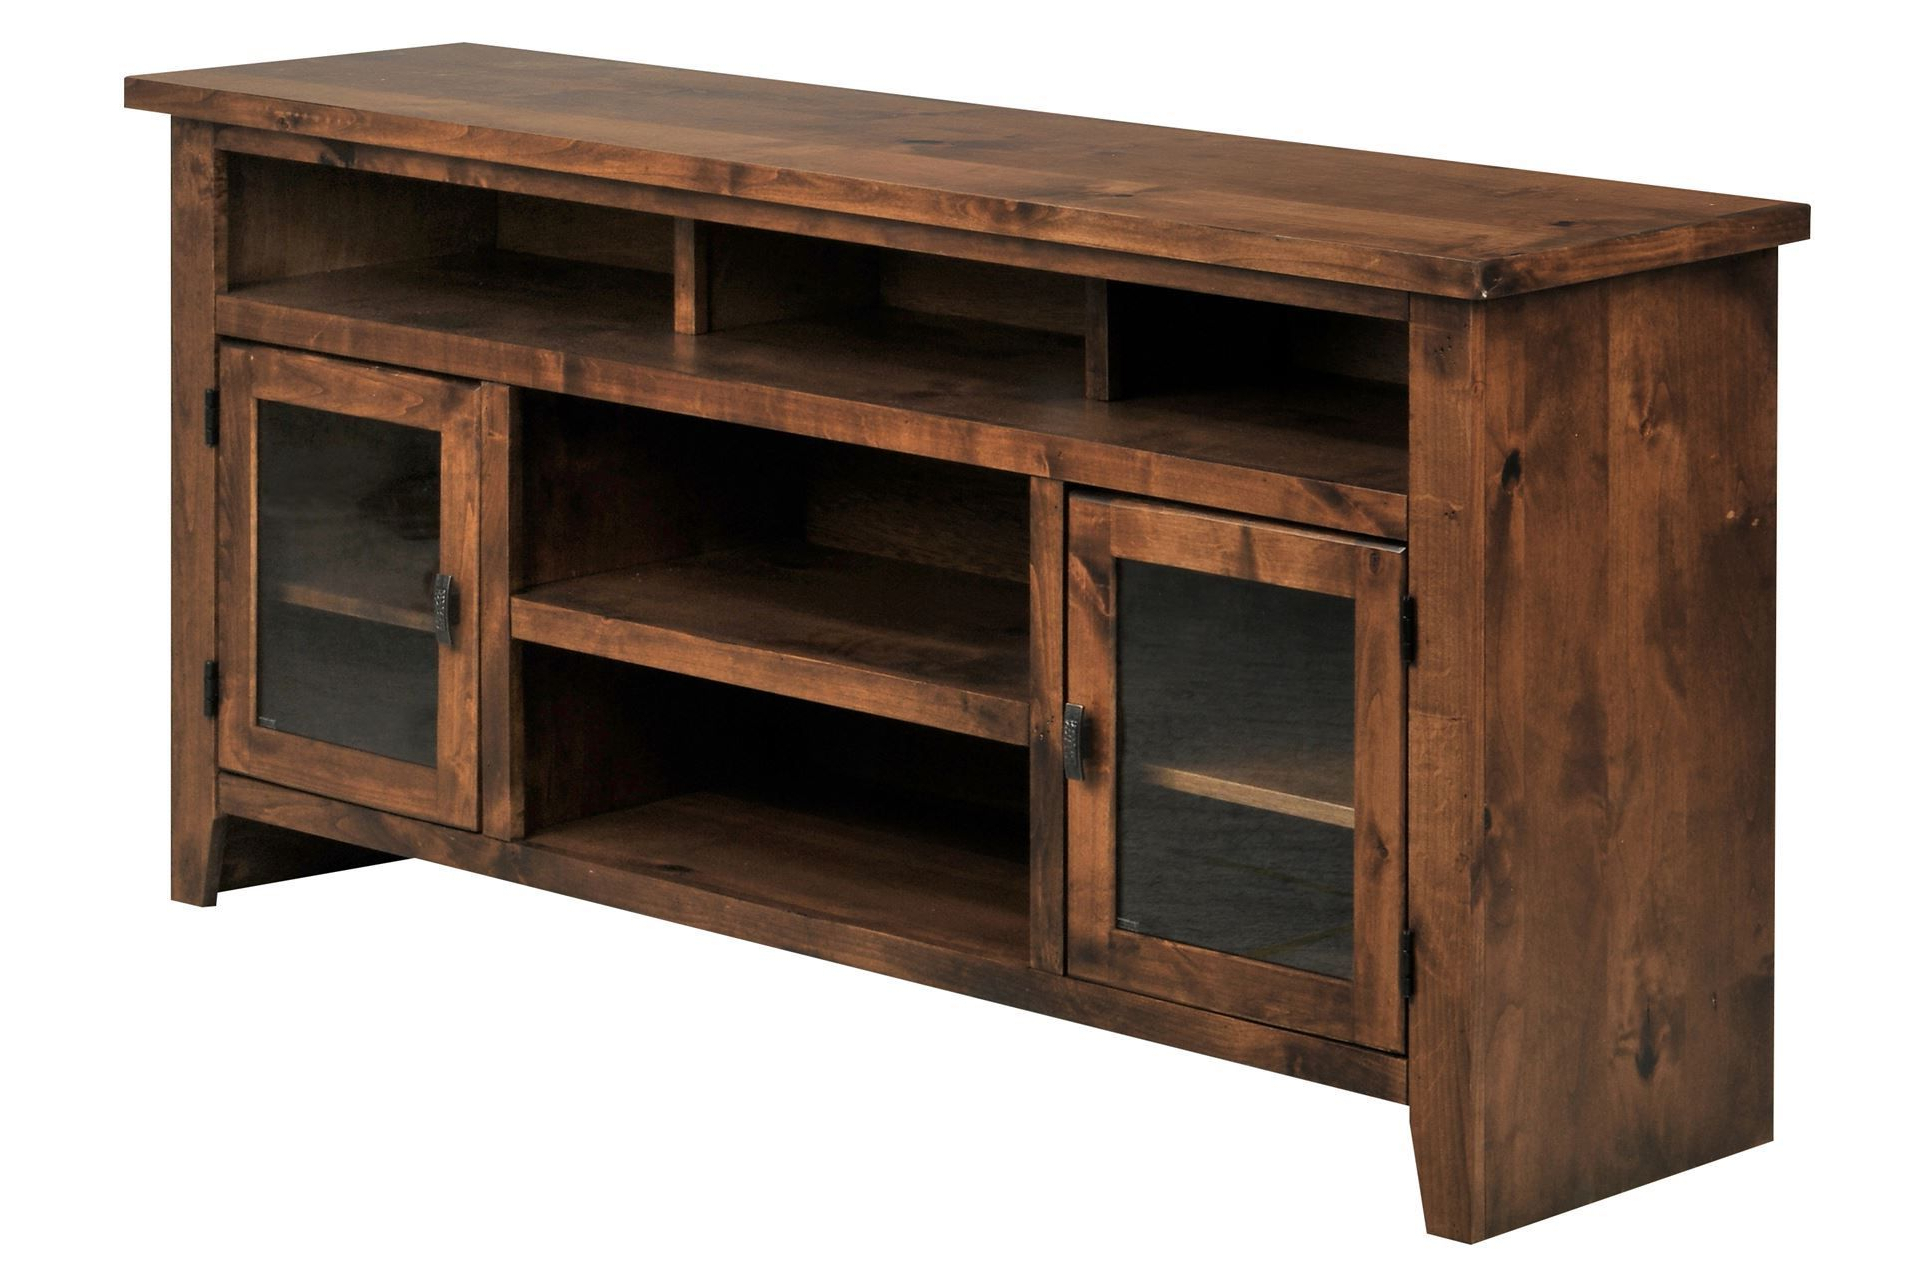 65 Inch Tv Stand, Trent, Fruitwood | 65 Inch Tv Stand, Tv Stands And Tvs Intended For Sinclair Grey 64 Inch Tv Stands (View 1 of 20)